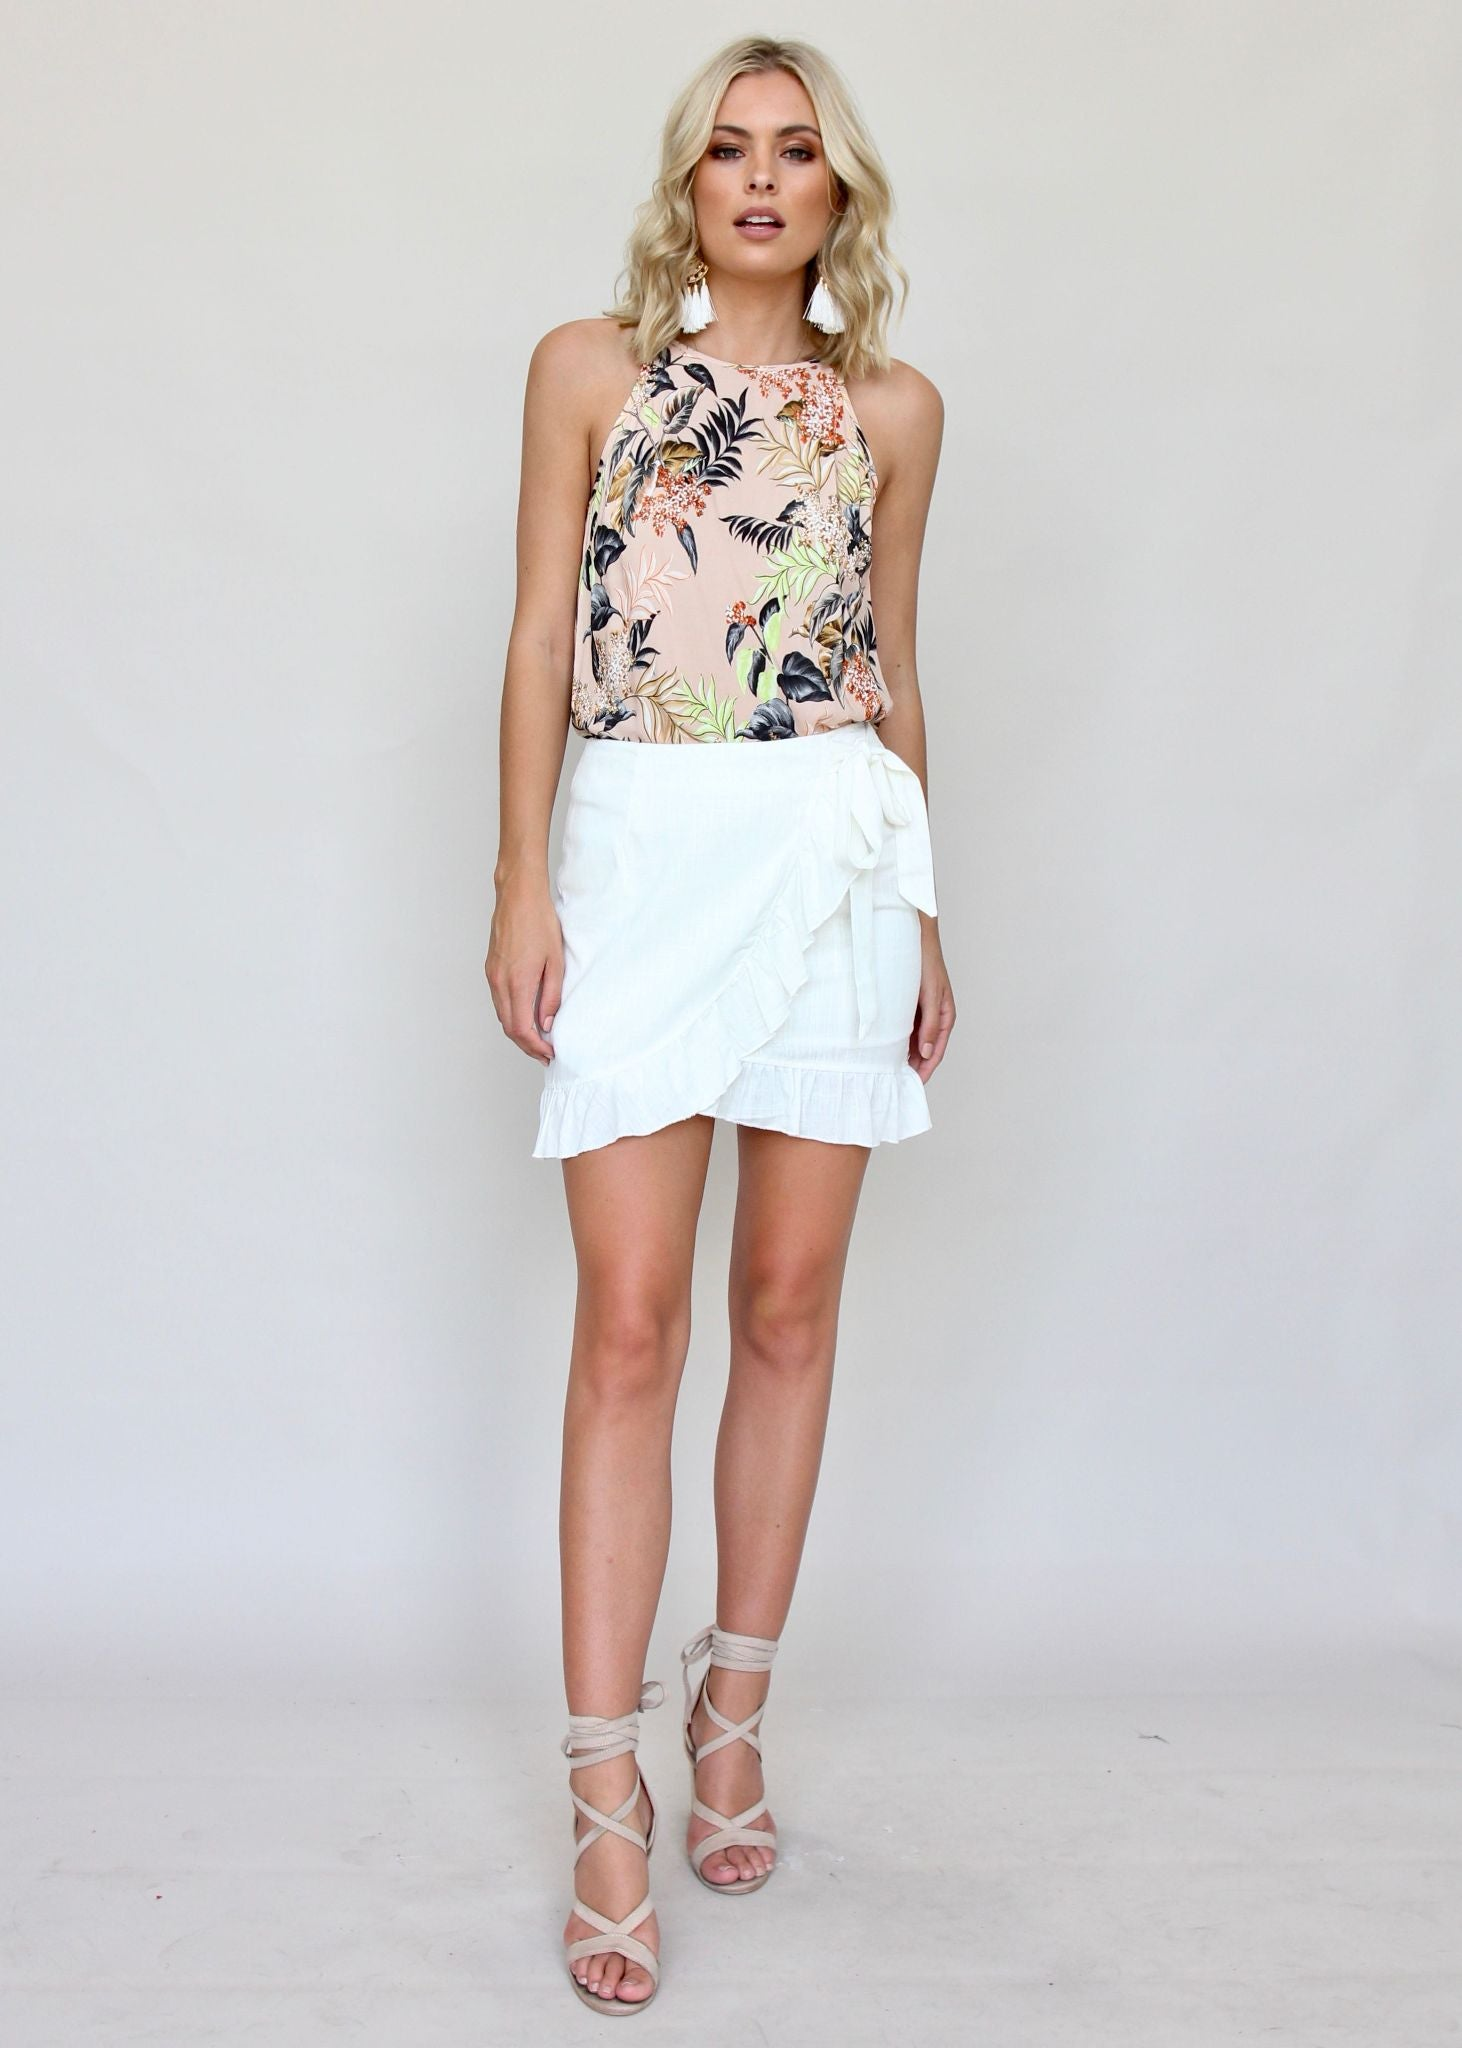 Above All Skirt - White